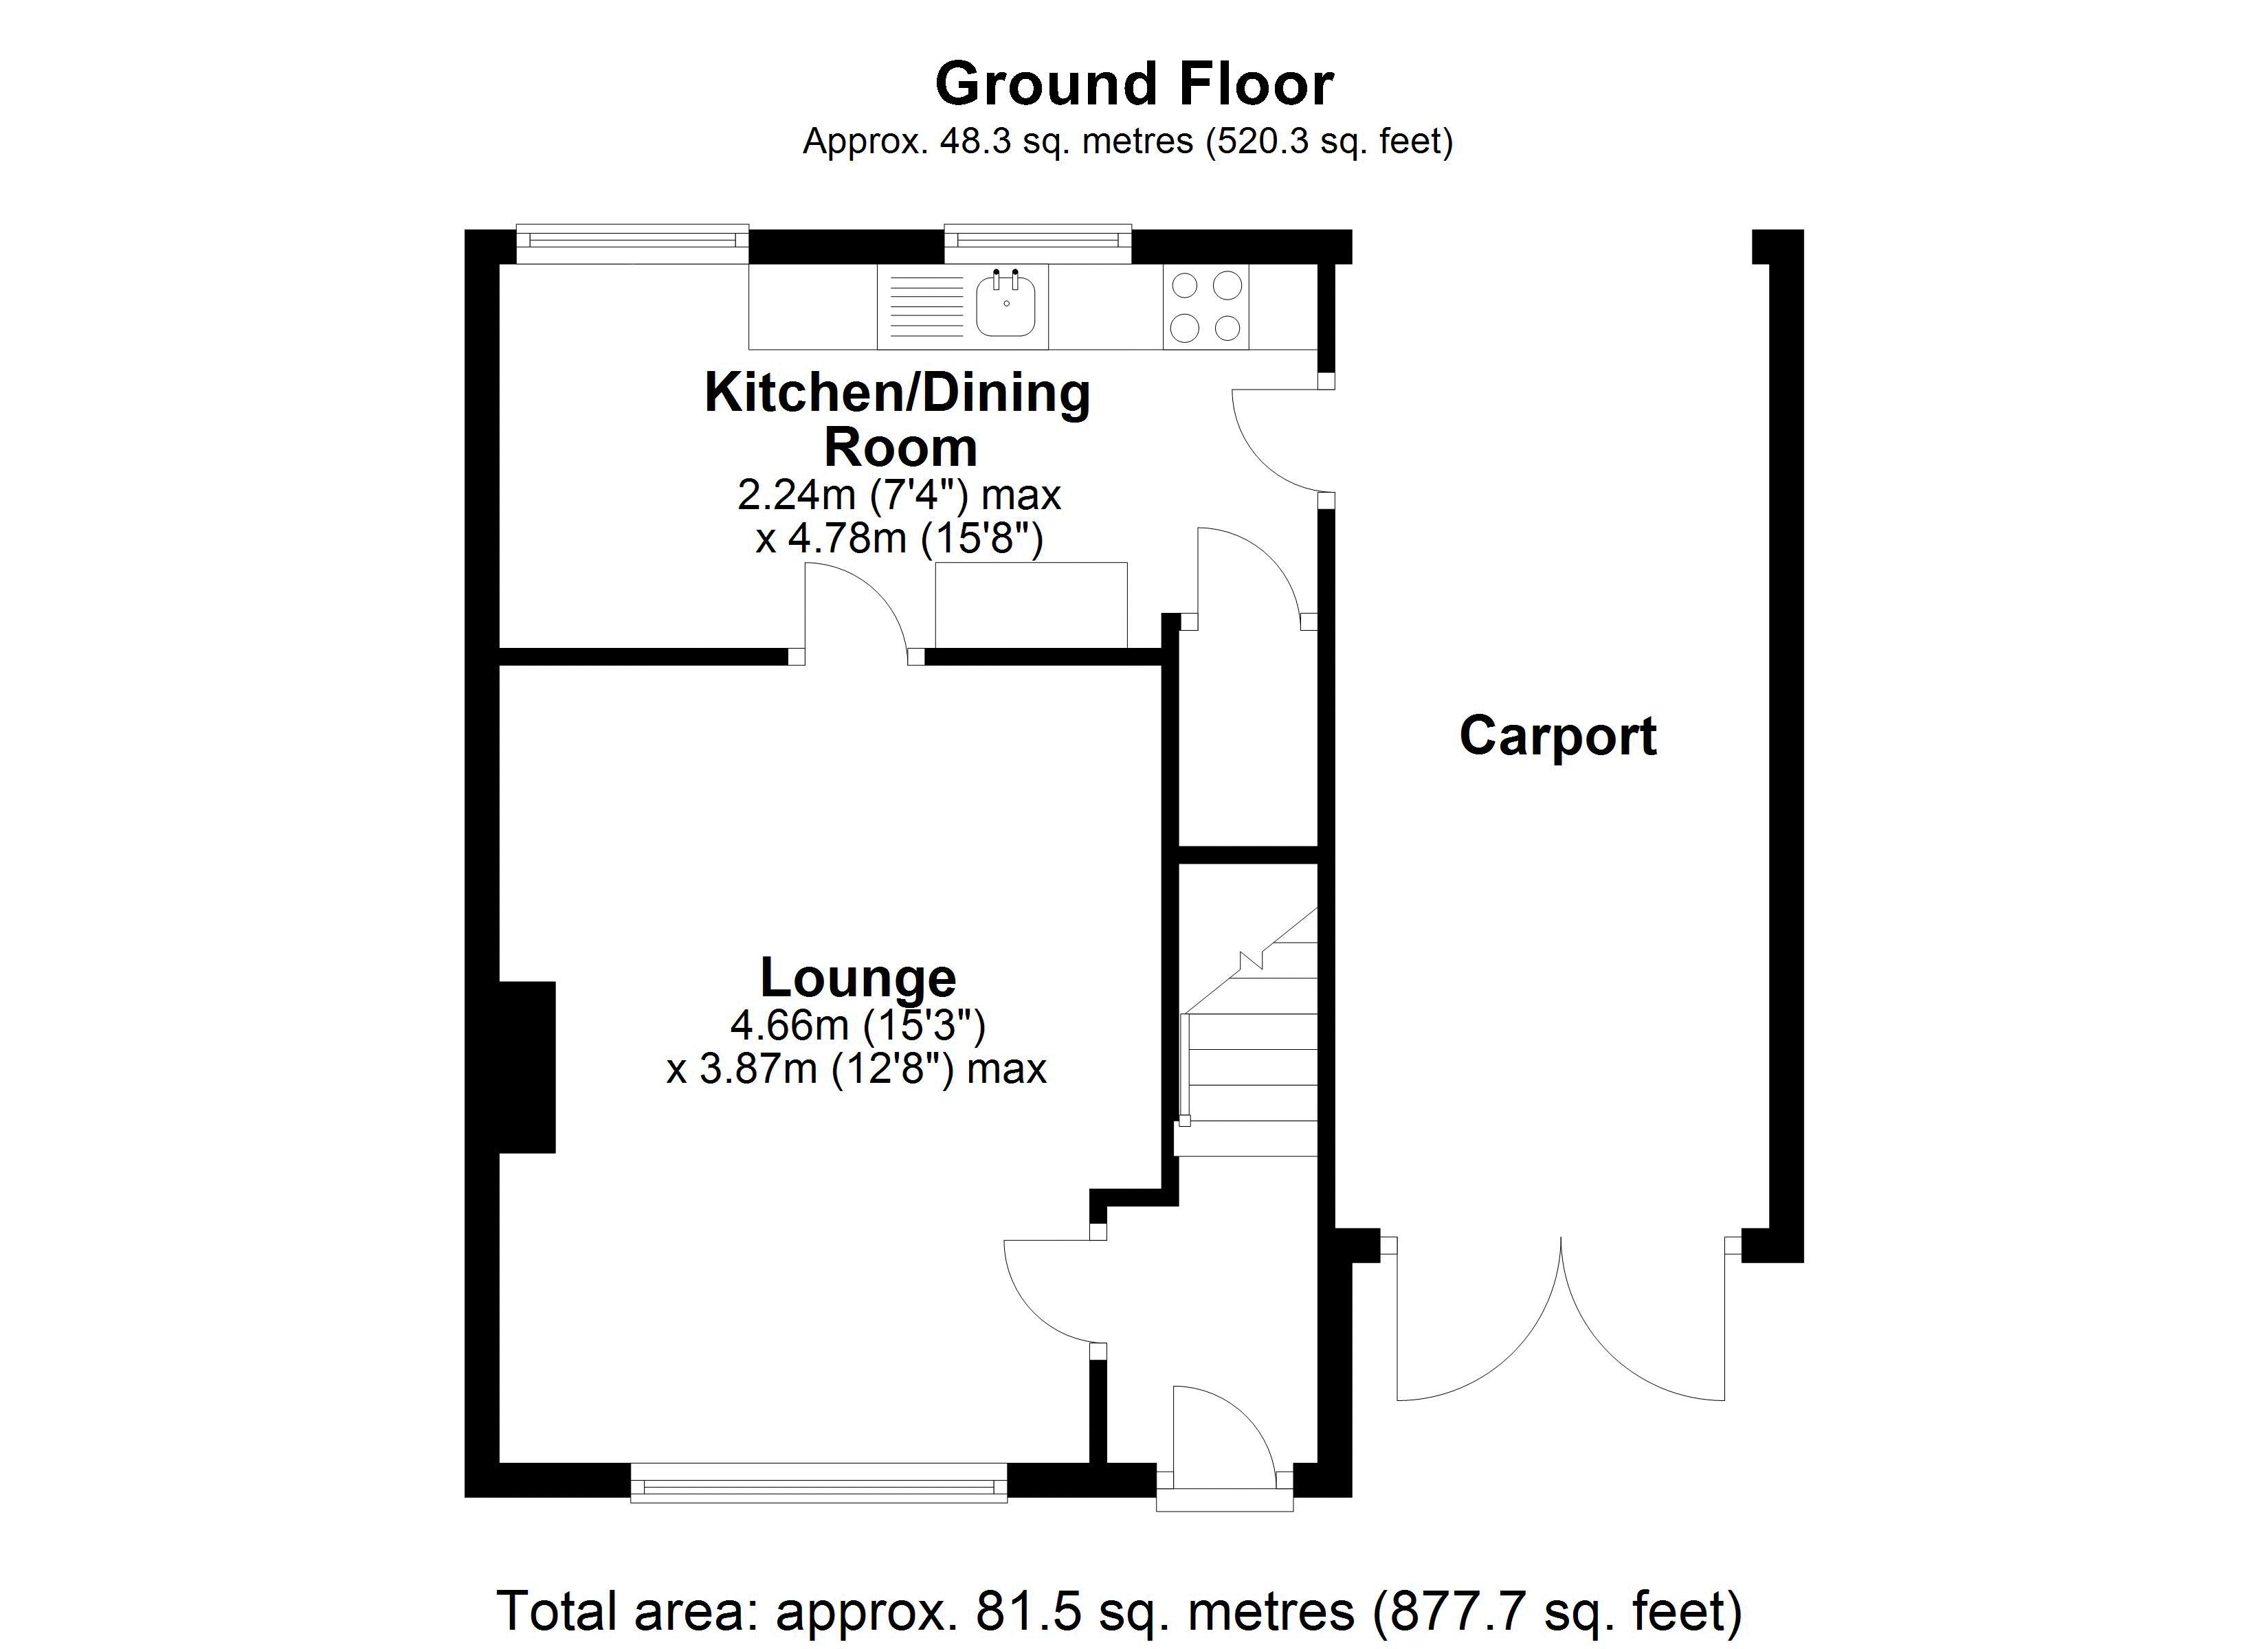 11 Orchard Ground Floor plan